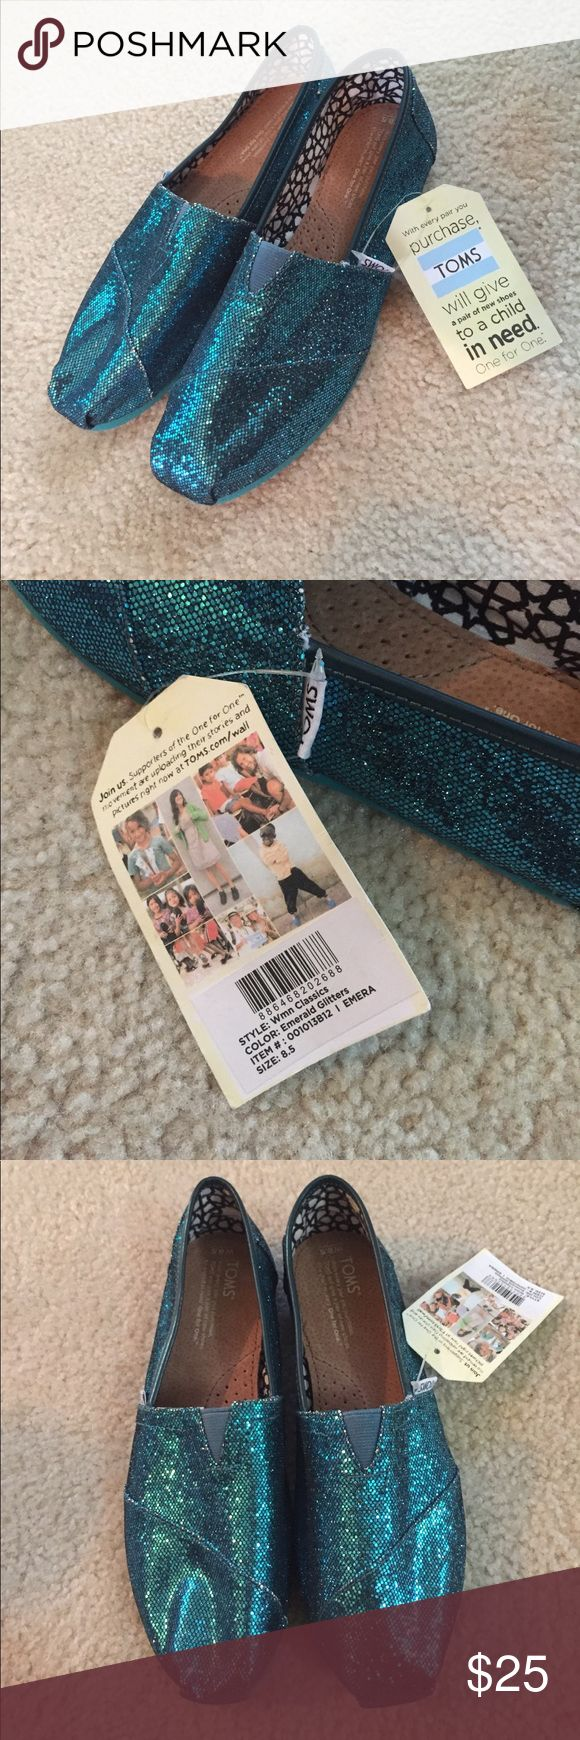 Turquoise glitter TOMS Turquoise glitter TOMS, size 8.5. Brand new, never worn, tags still on! Toms Shoes